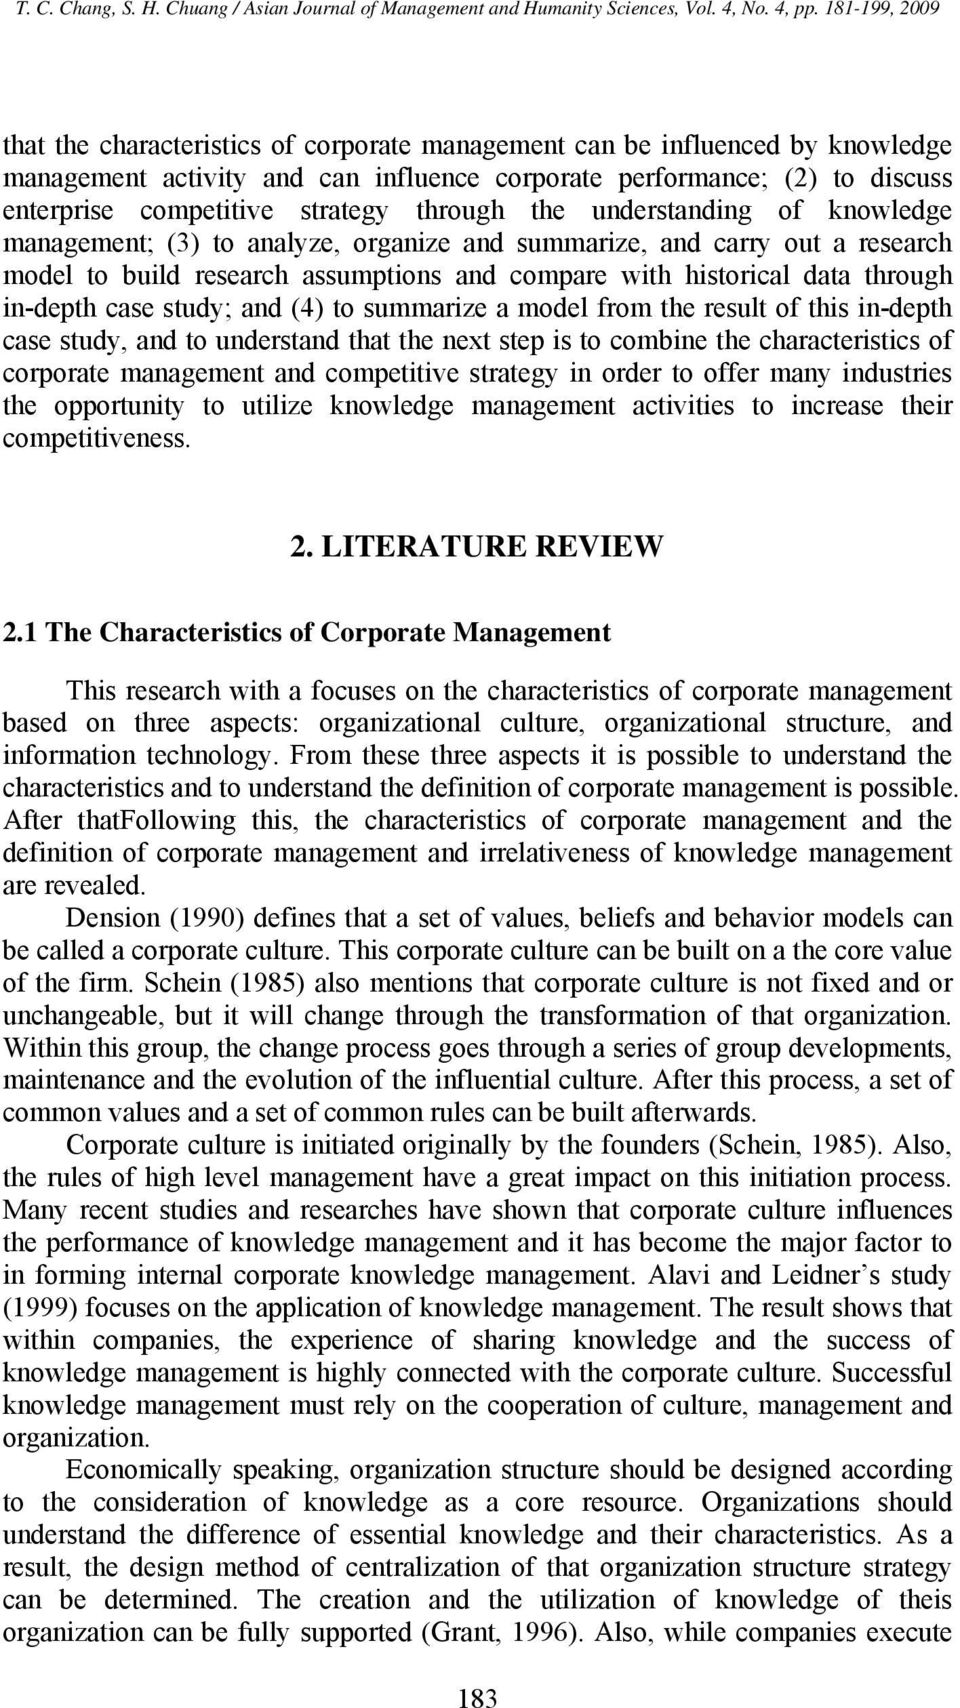 study; and (4) to summarize a model from the result of this in-depth case study, and to understand that the next step is to combine the characteristics of corporate management and competitive